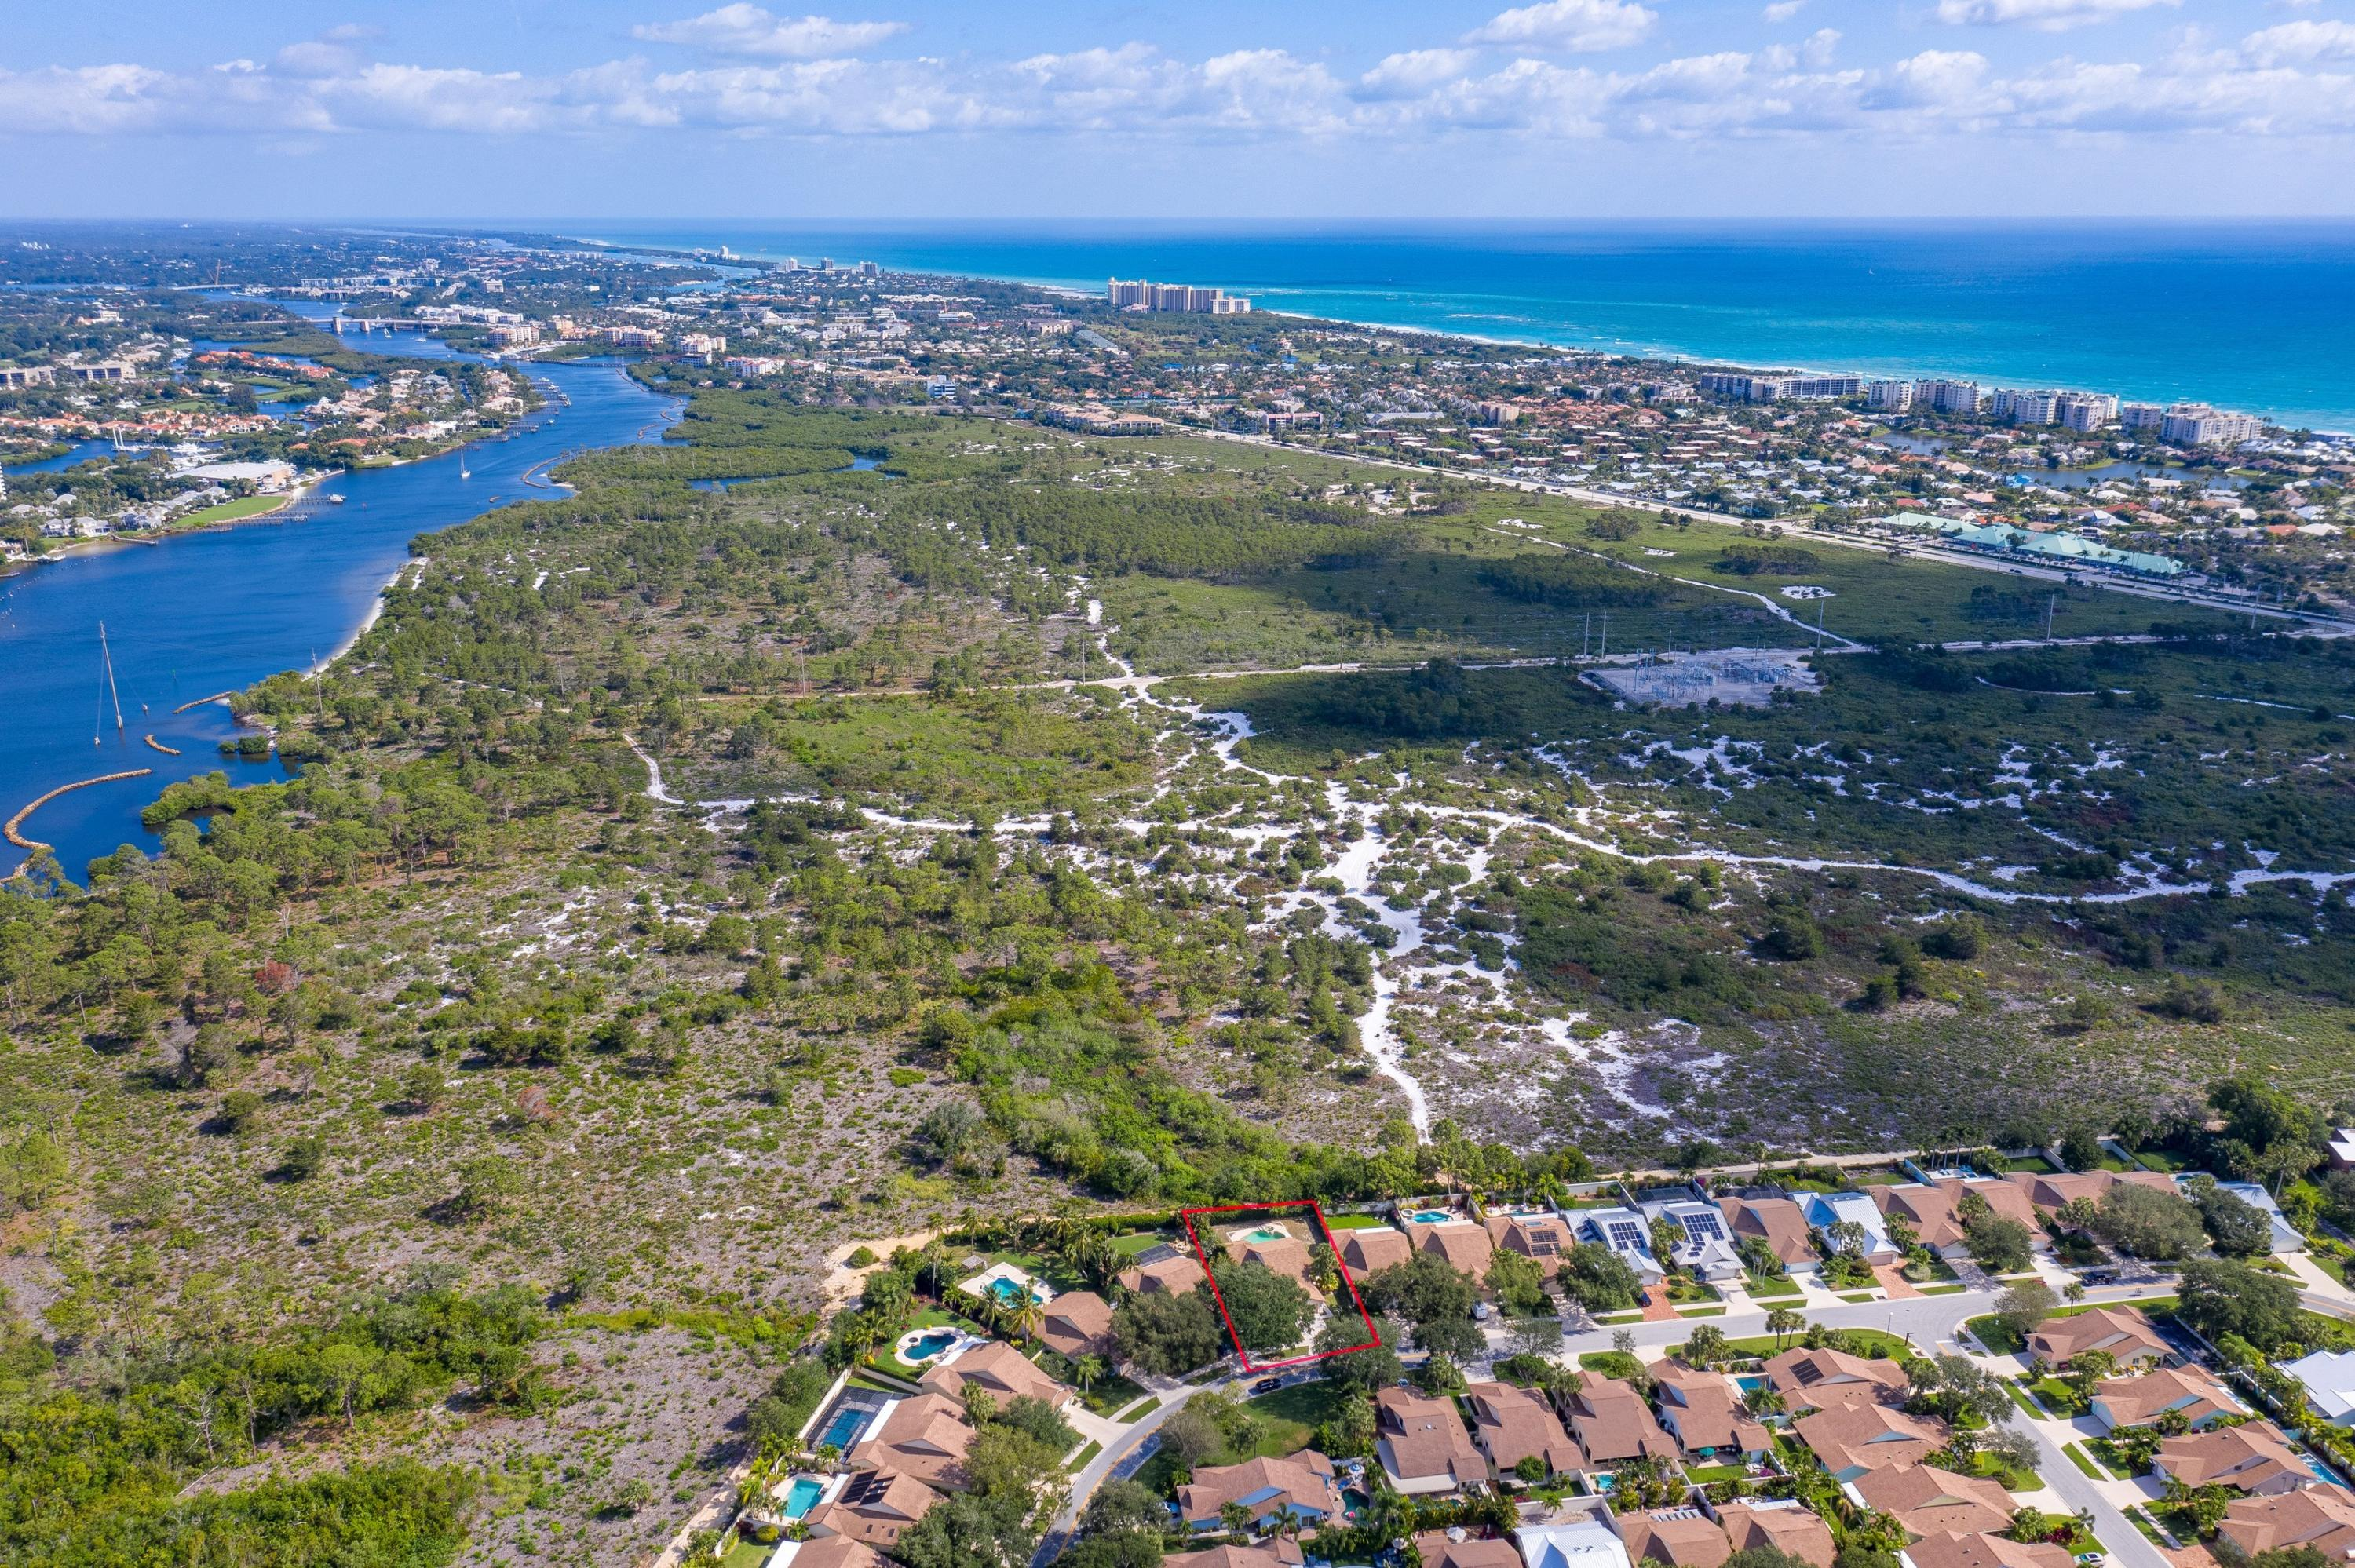 Welcome to Paradise!  Feel the ocean breeze from one of the best and most desirable locations in Jupiter!  This rare preserve lot offers peace and quiet in your backyard with complete privacy and no neighbors ever!  Priced 2 Sell FAST so bring your buyers and/or investors.  Upgrades: Roof (2016), AC (2018), Garage Door (2017), Pool Pump (2019). The home is in original condition and is ripe to be remodeled to your specific tastes and desires. The same home with upgrades just sold for over $850,000!! Beach Town Vibe with Seaside Living, this house has everything right at your fingertips - elite beach, crystal clear water, fine restaurants, top local shops/stores, Public grocery store, boating, marina, lots of Golf, fishing, recreational activities and much more!